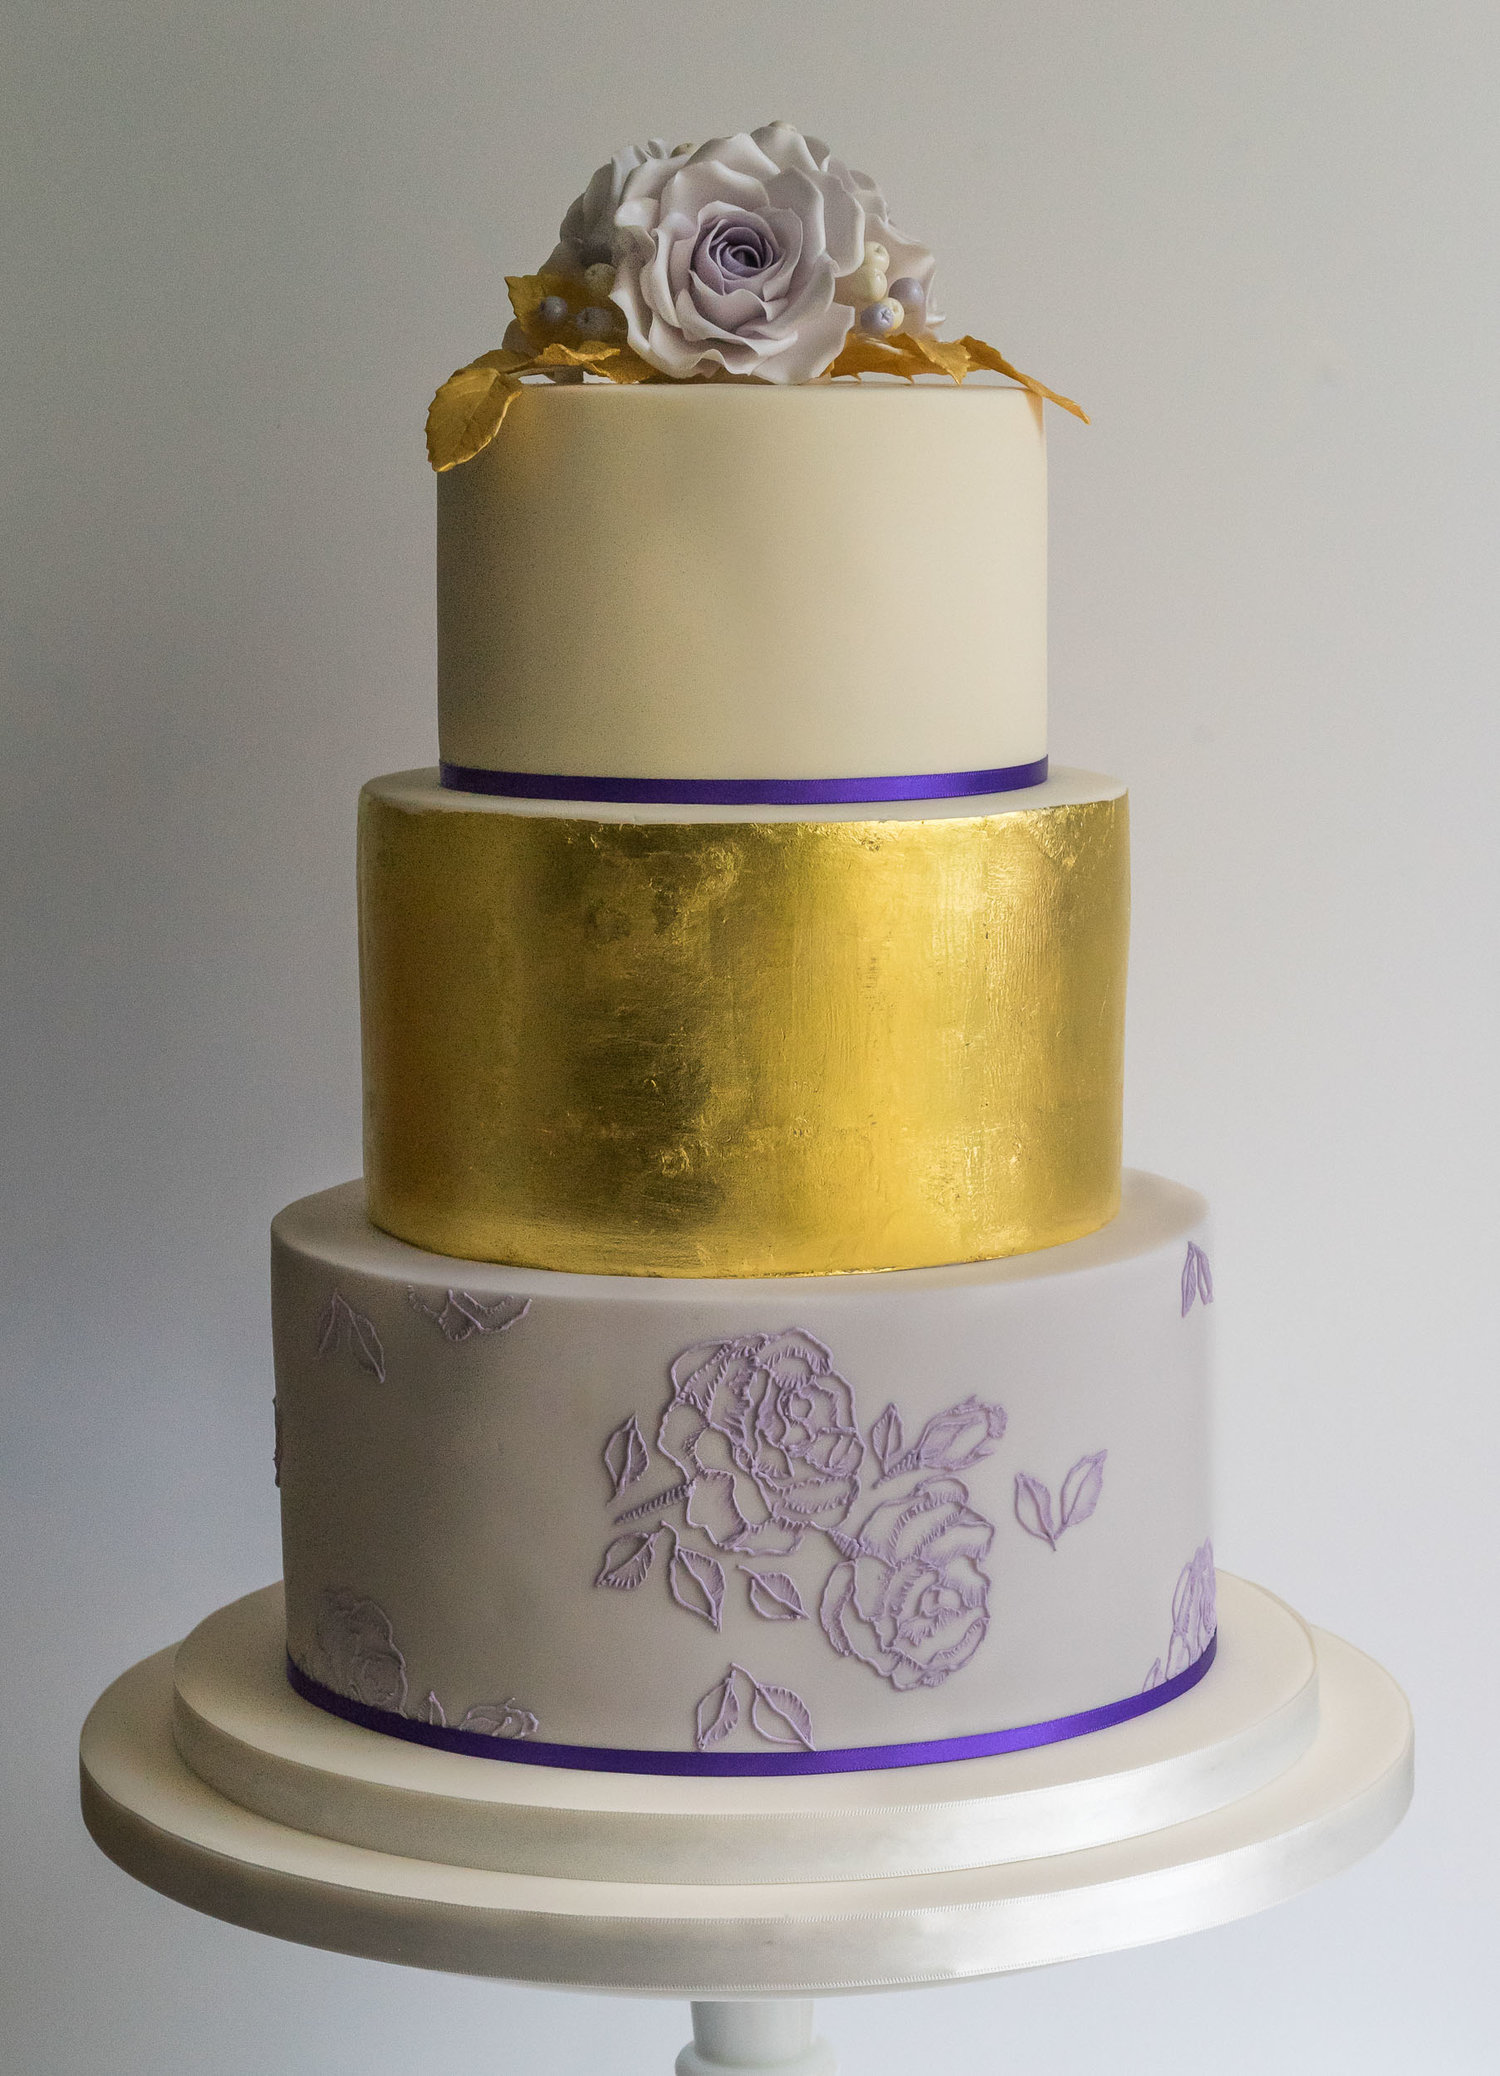 Gold wedding cake by Cost Wold cake Kitchen.